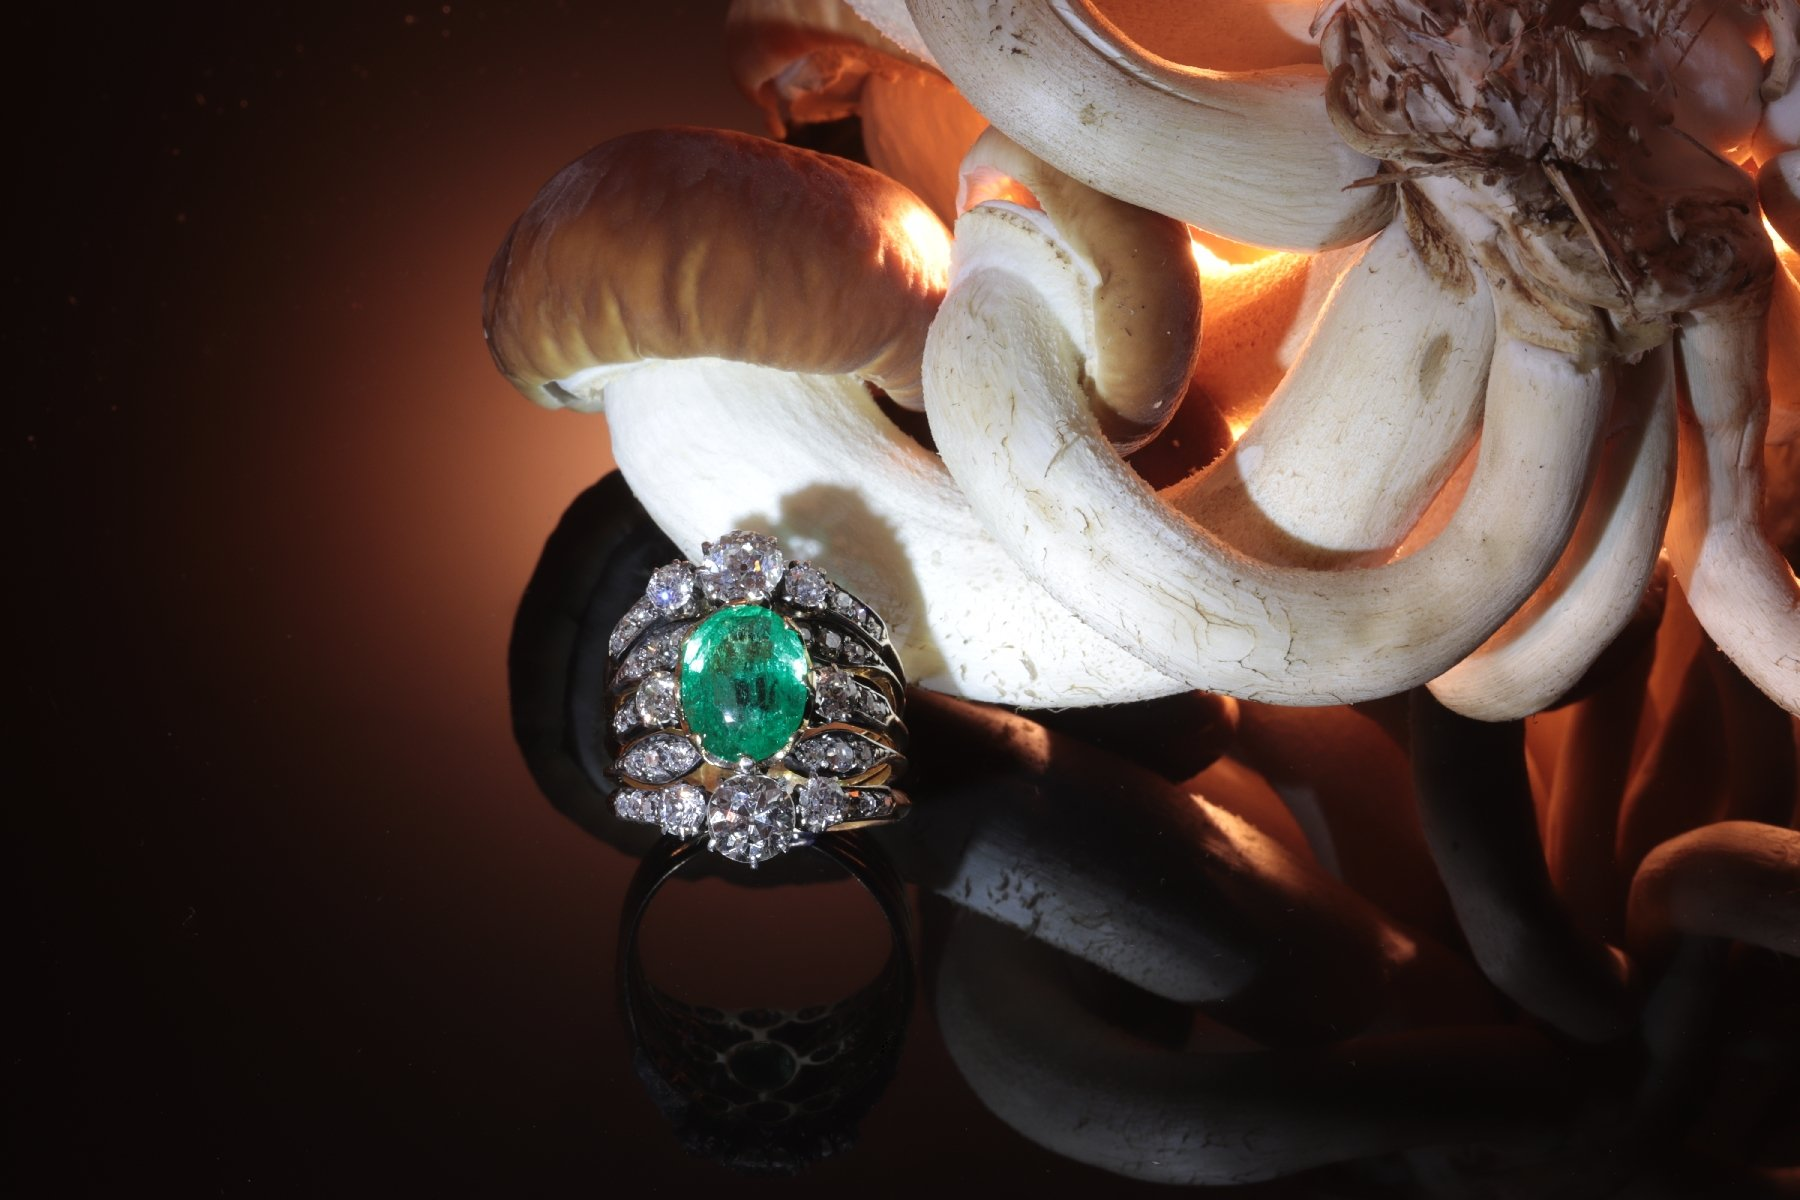 Click the picture to get to see this Victorian antique ring with diamonds and emerald used as hero prop in movie The Spider in the Web.